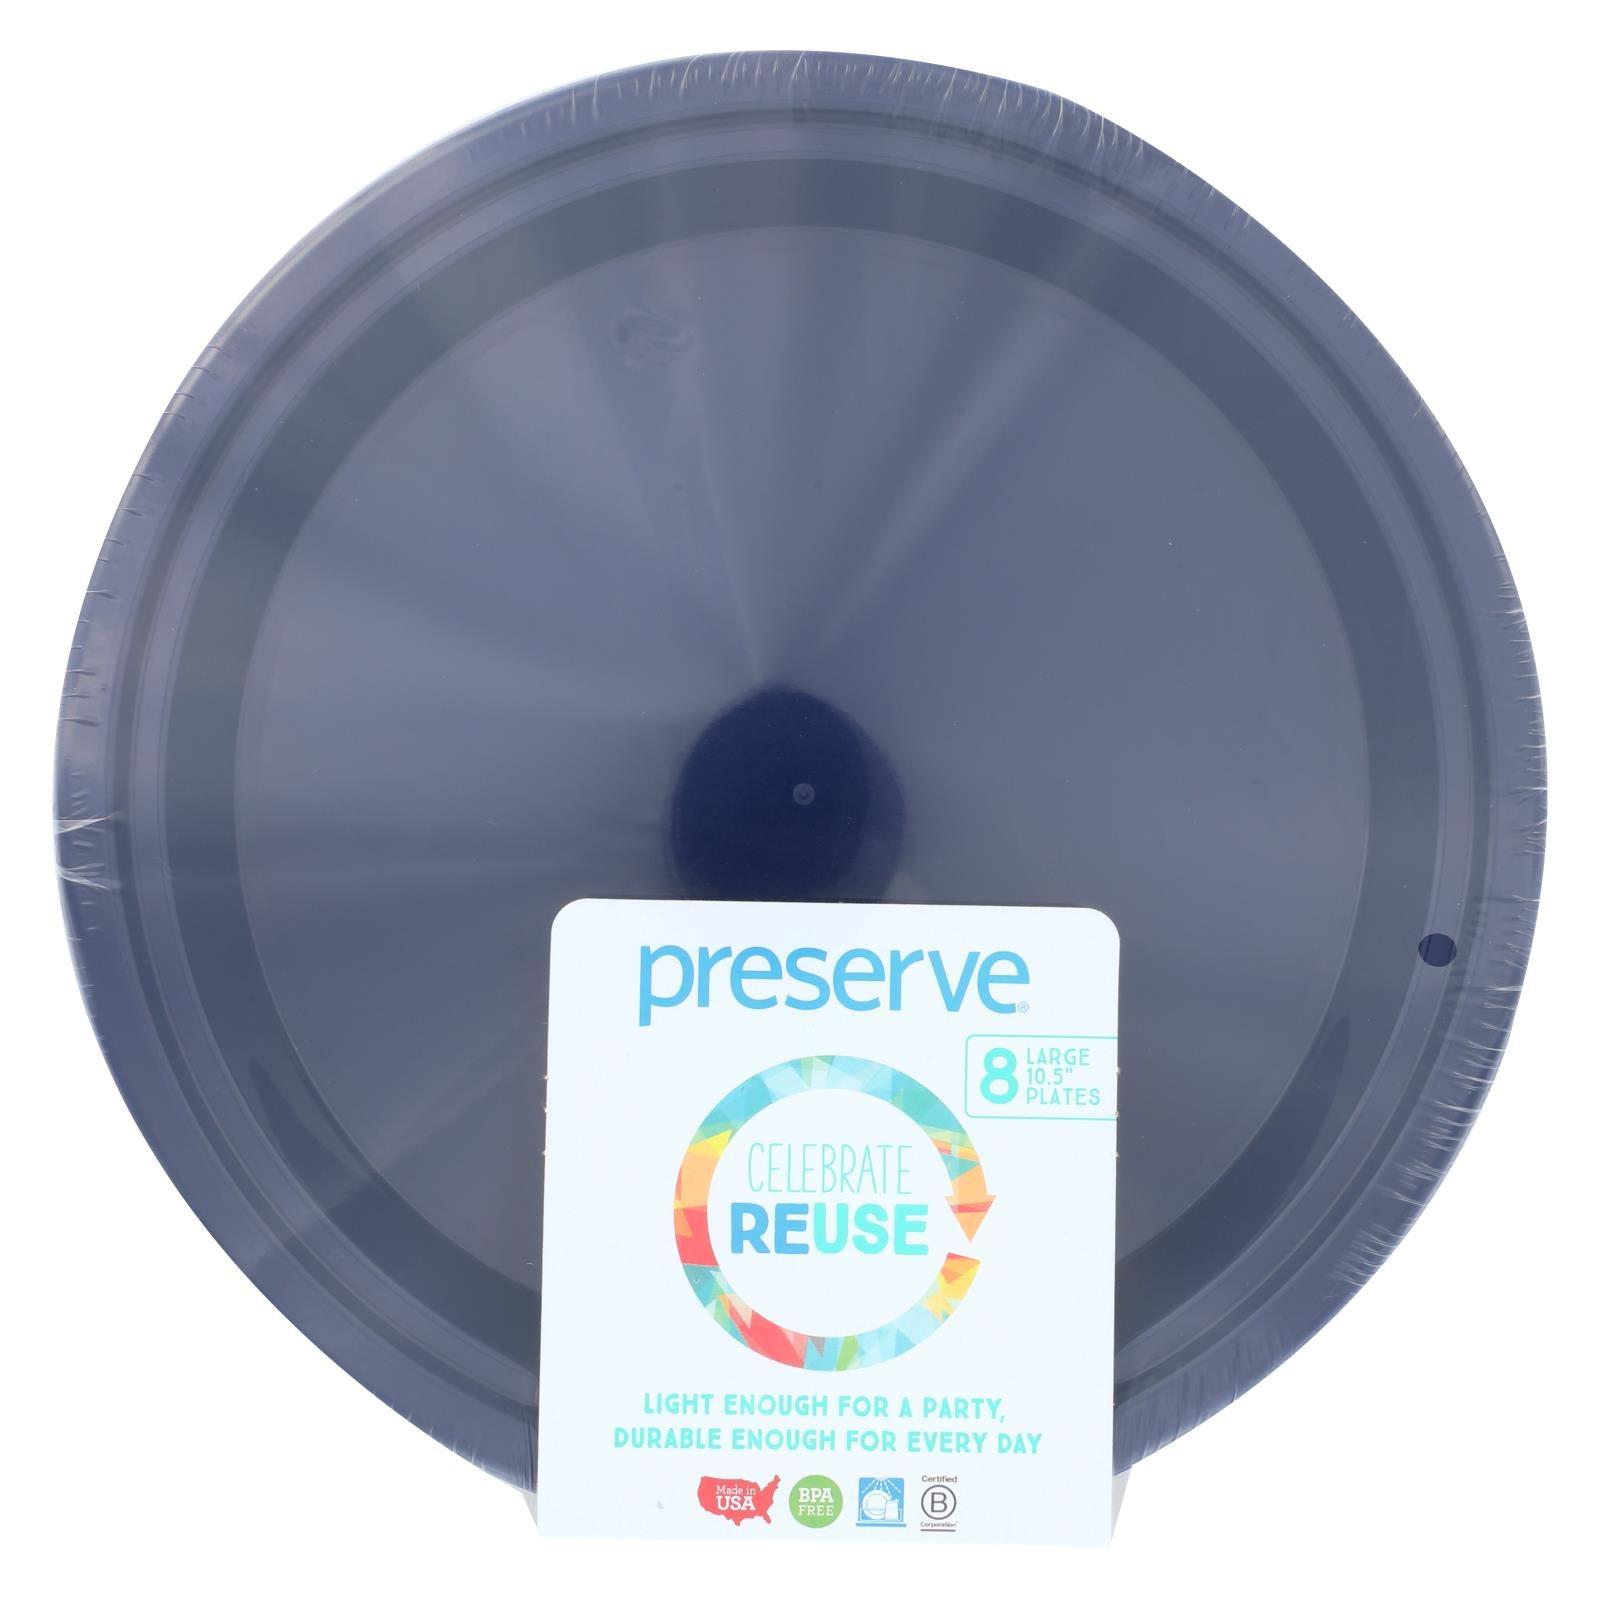 Buy Preserve On the Go Large Reusable Plates - Midnight Blue - 8 Pack - 10.5 in - Tableware from Veroeco.com